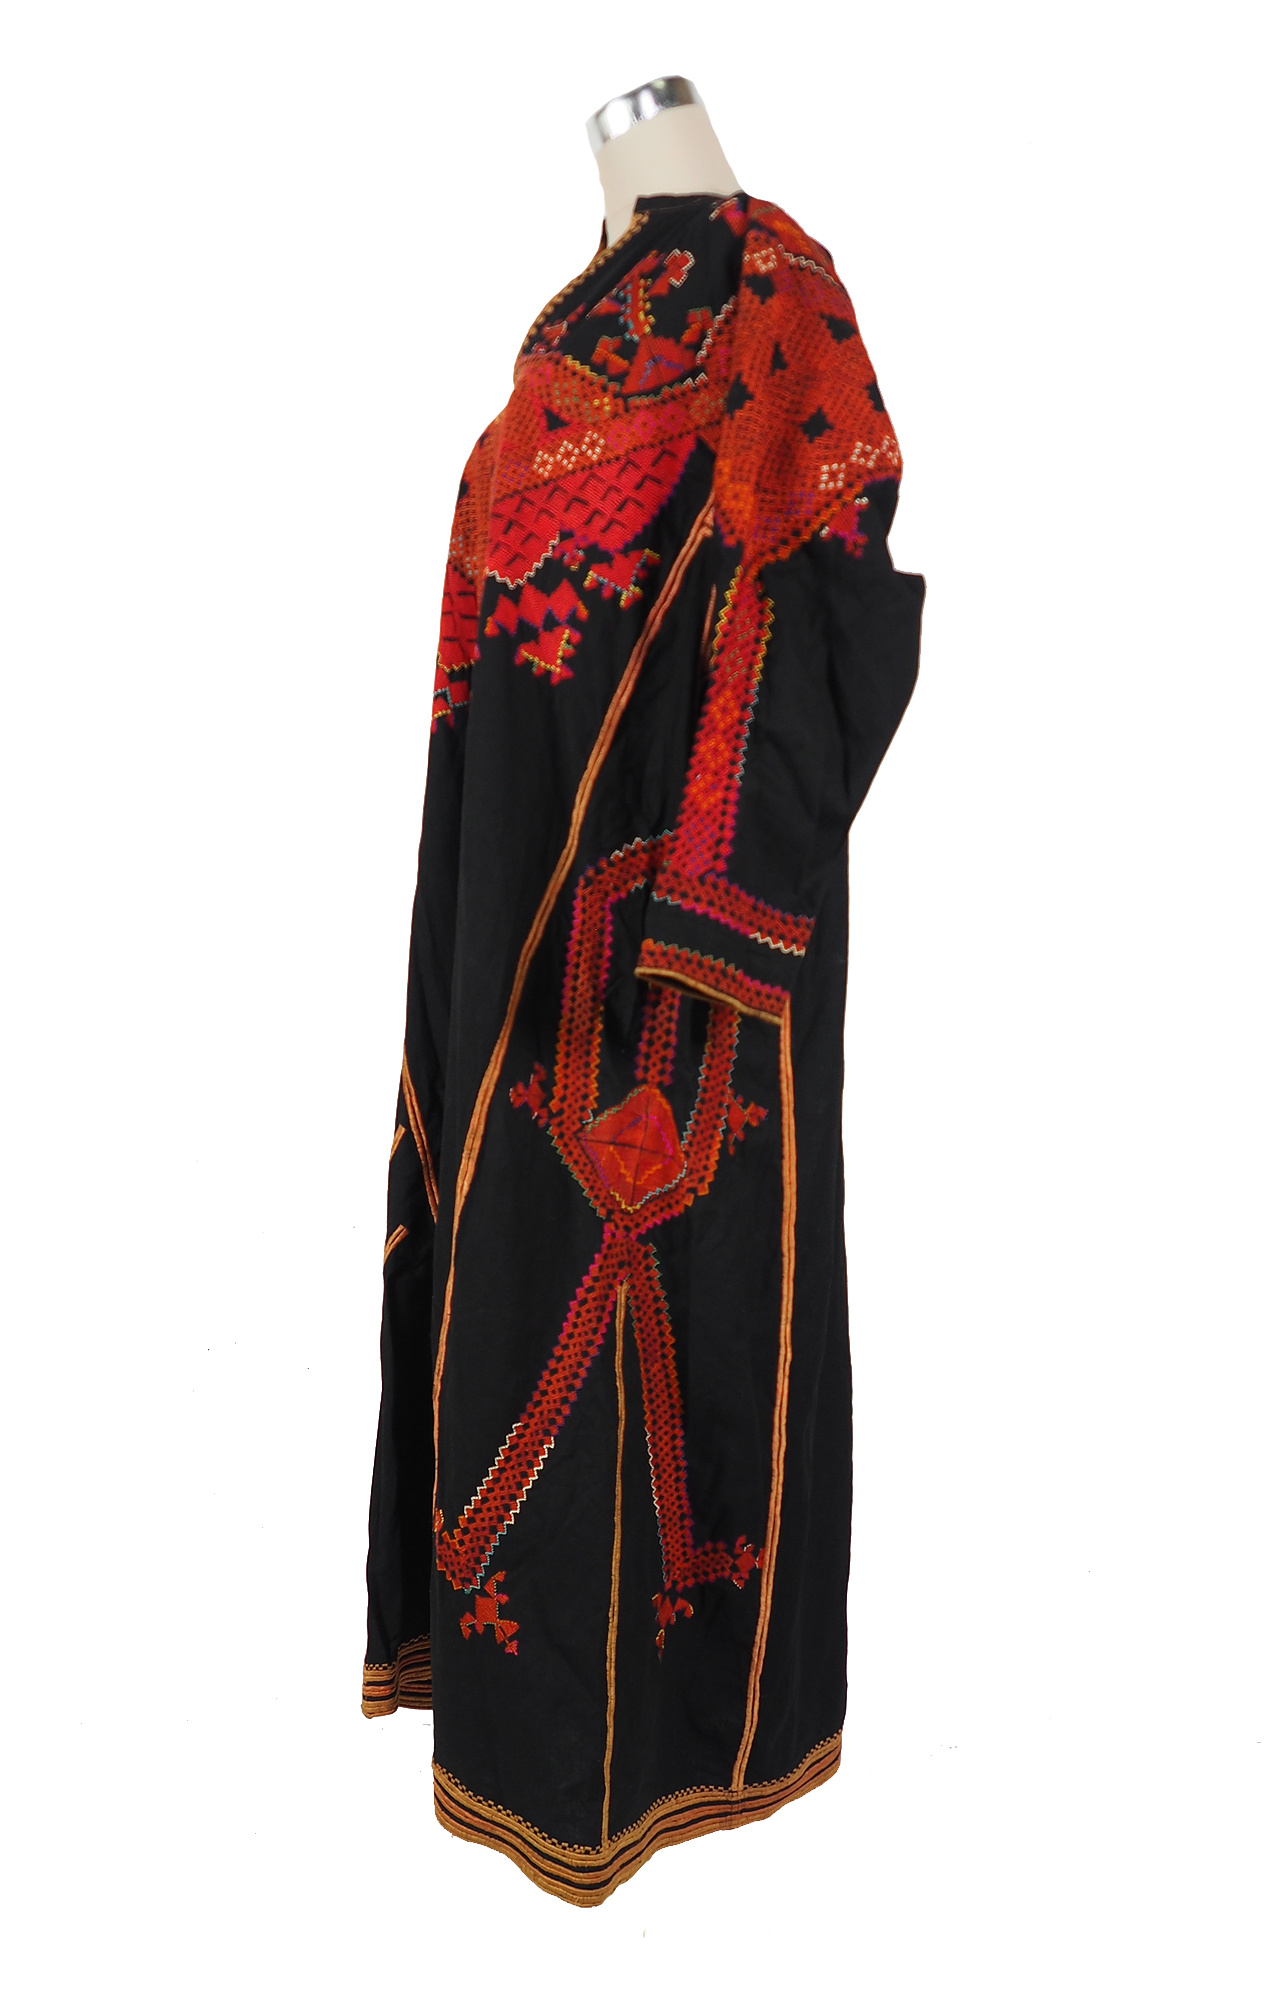 Palestinian girls embroidered ethnic dress No:27